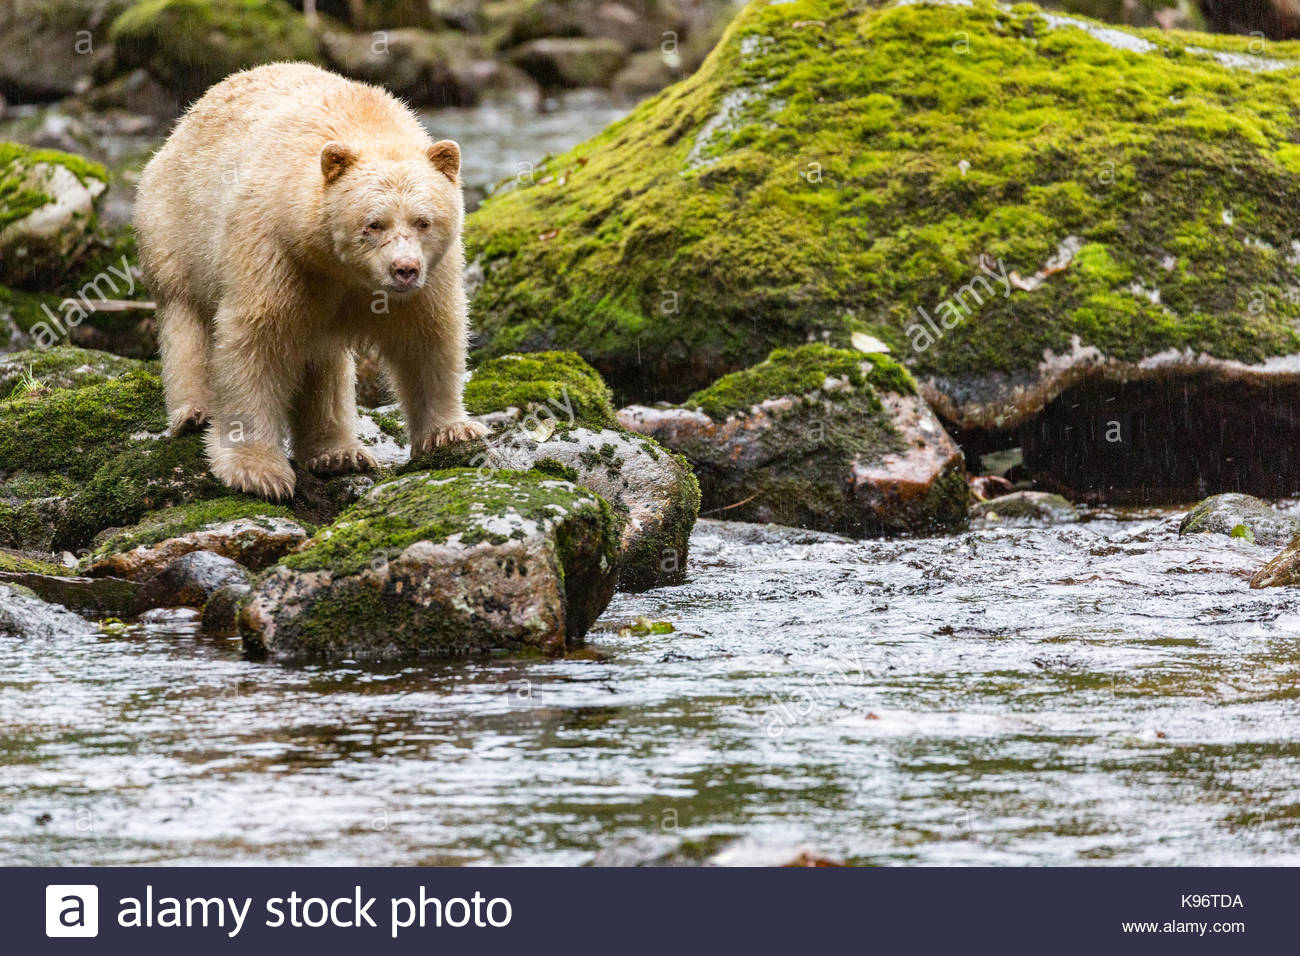 Kermode bear watches the river from a rocky shoreline. - Stock Image